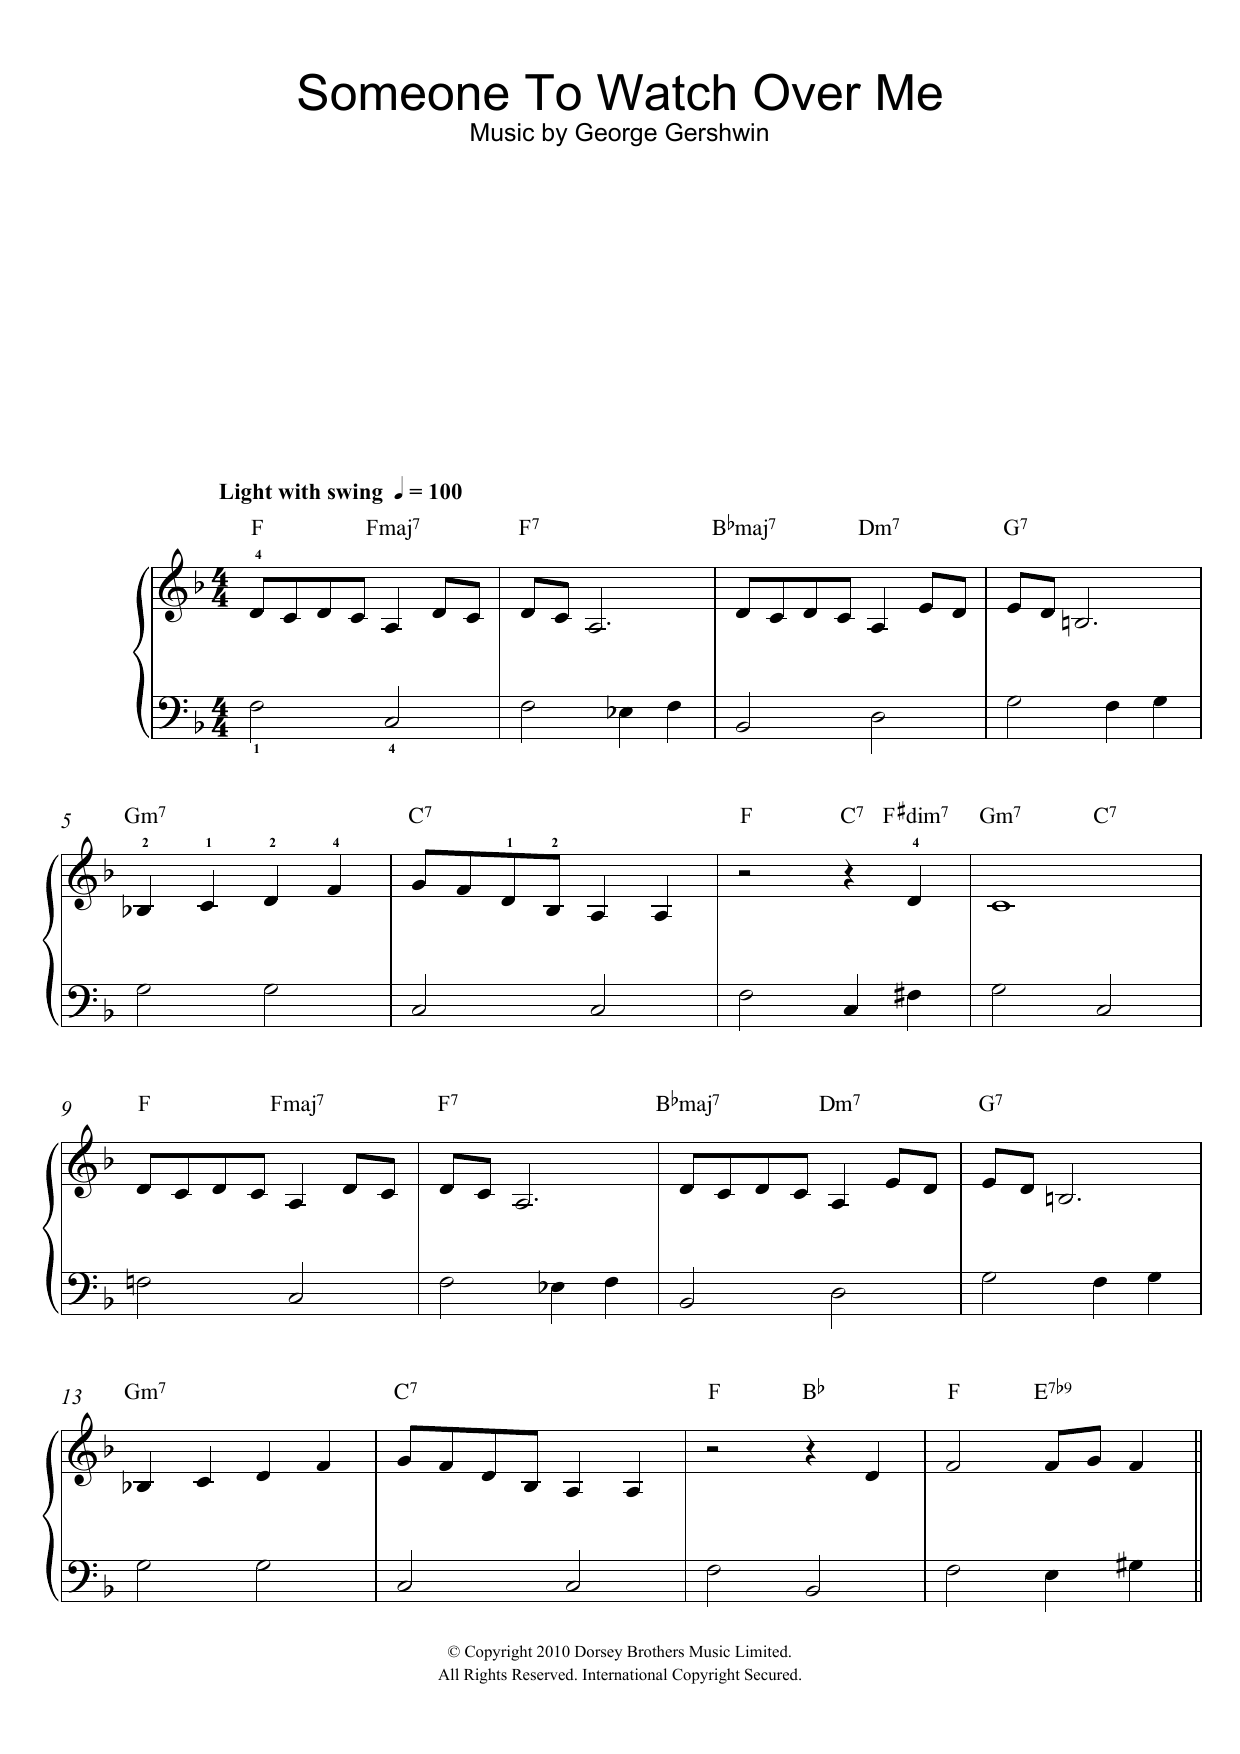 Someone To Watch Over Me sheet music for piano solo (chords) by George Gershwin